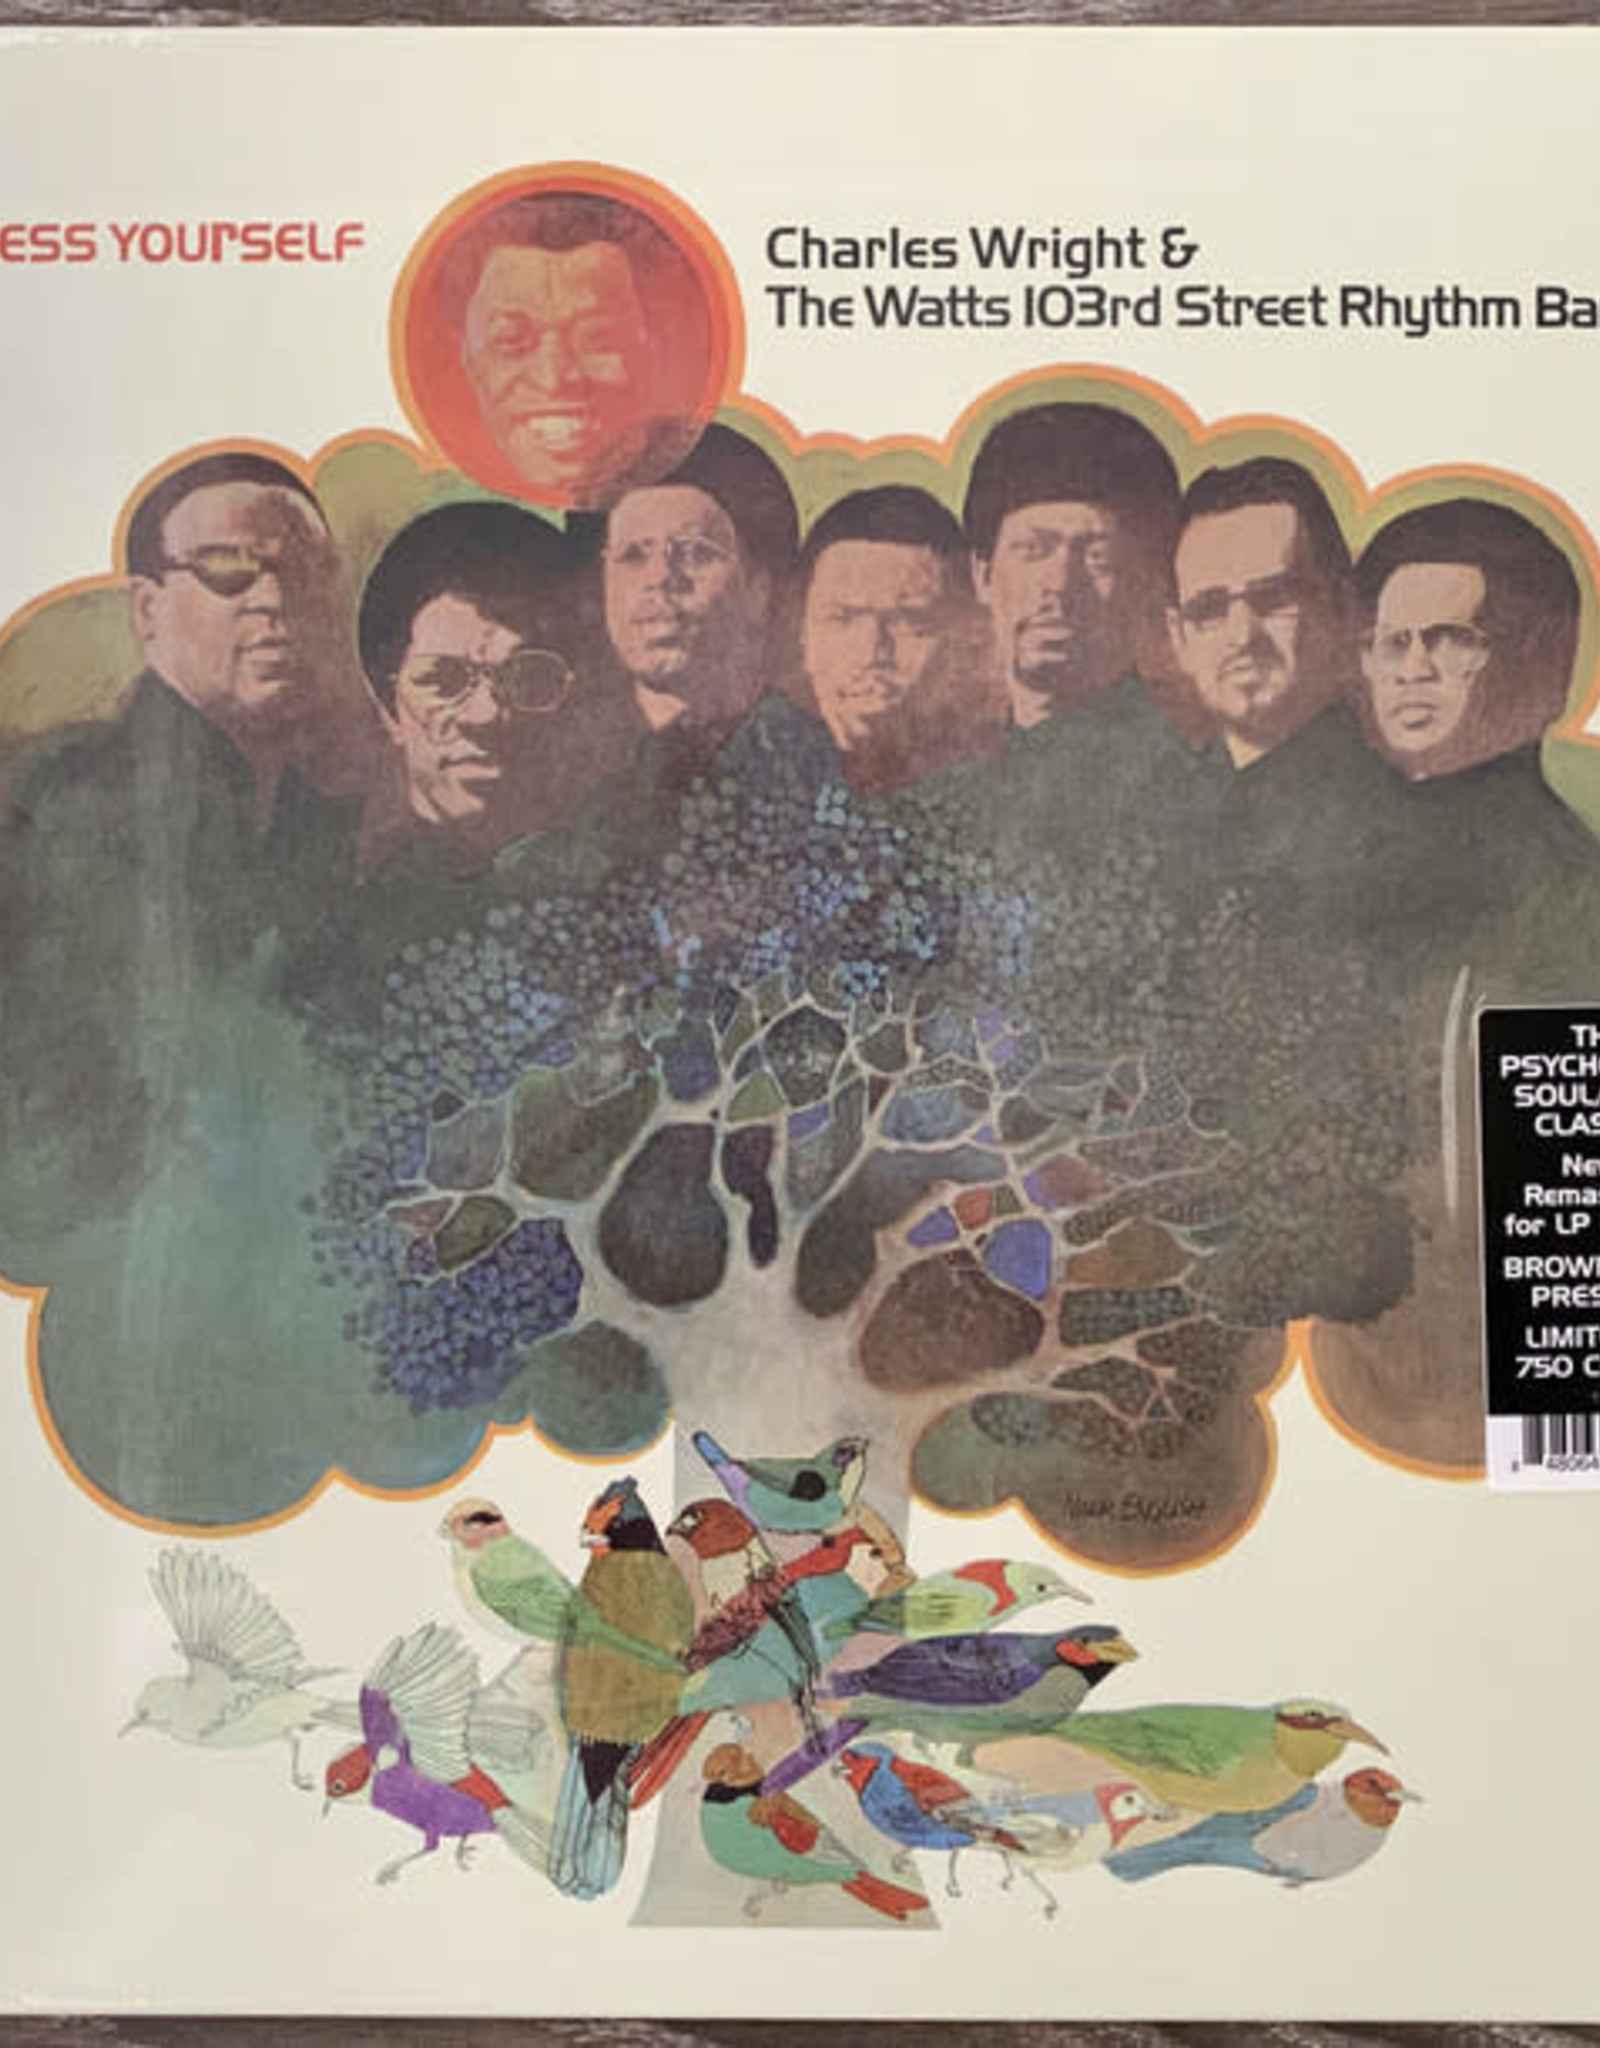 Charles & The Watts 103Rd Street Rhythm Band Wright - Express Yourself (Limited & Remastered Brown Vinyl Edition)